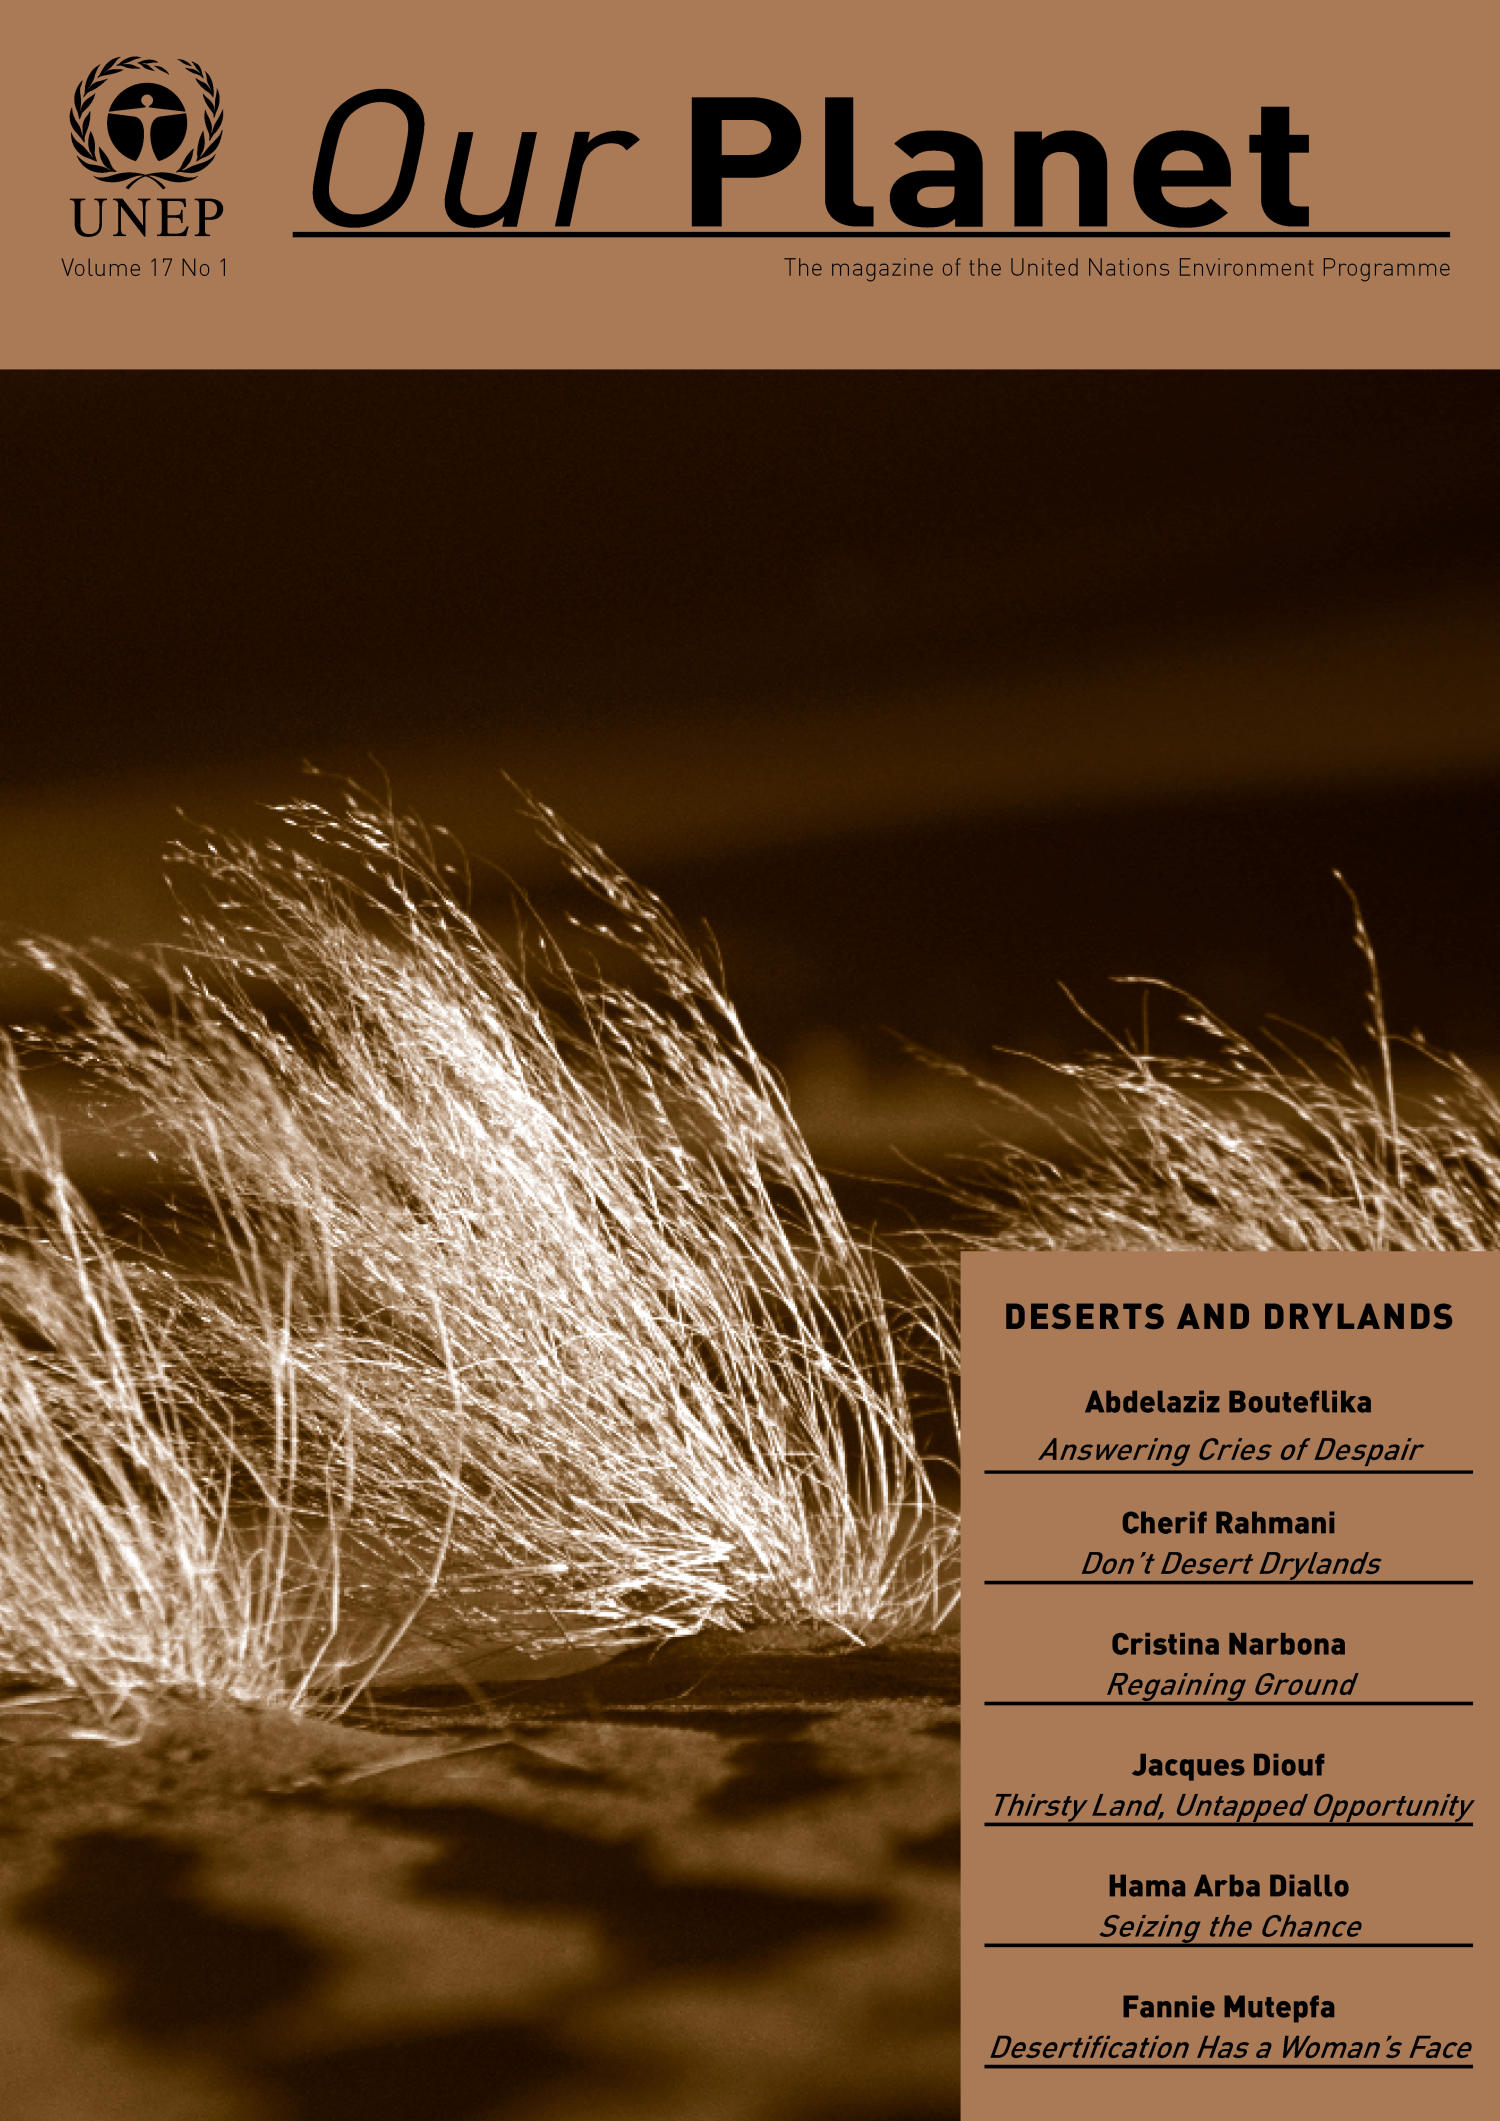 Our Planet, Volume 17, Number 1 : Deserts and Drylands                                                                                                      Front Cover